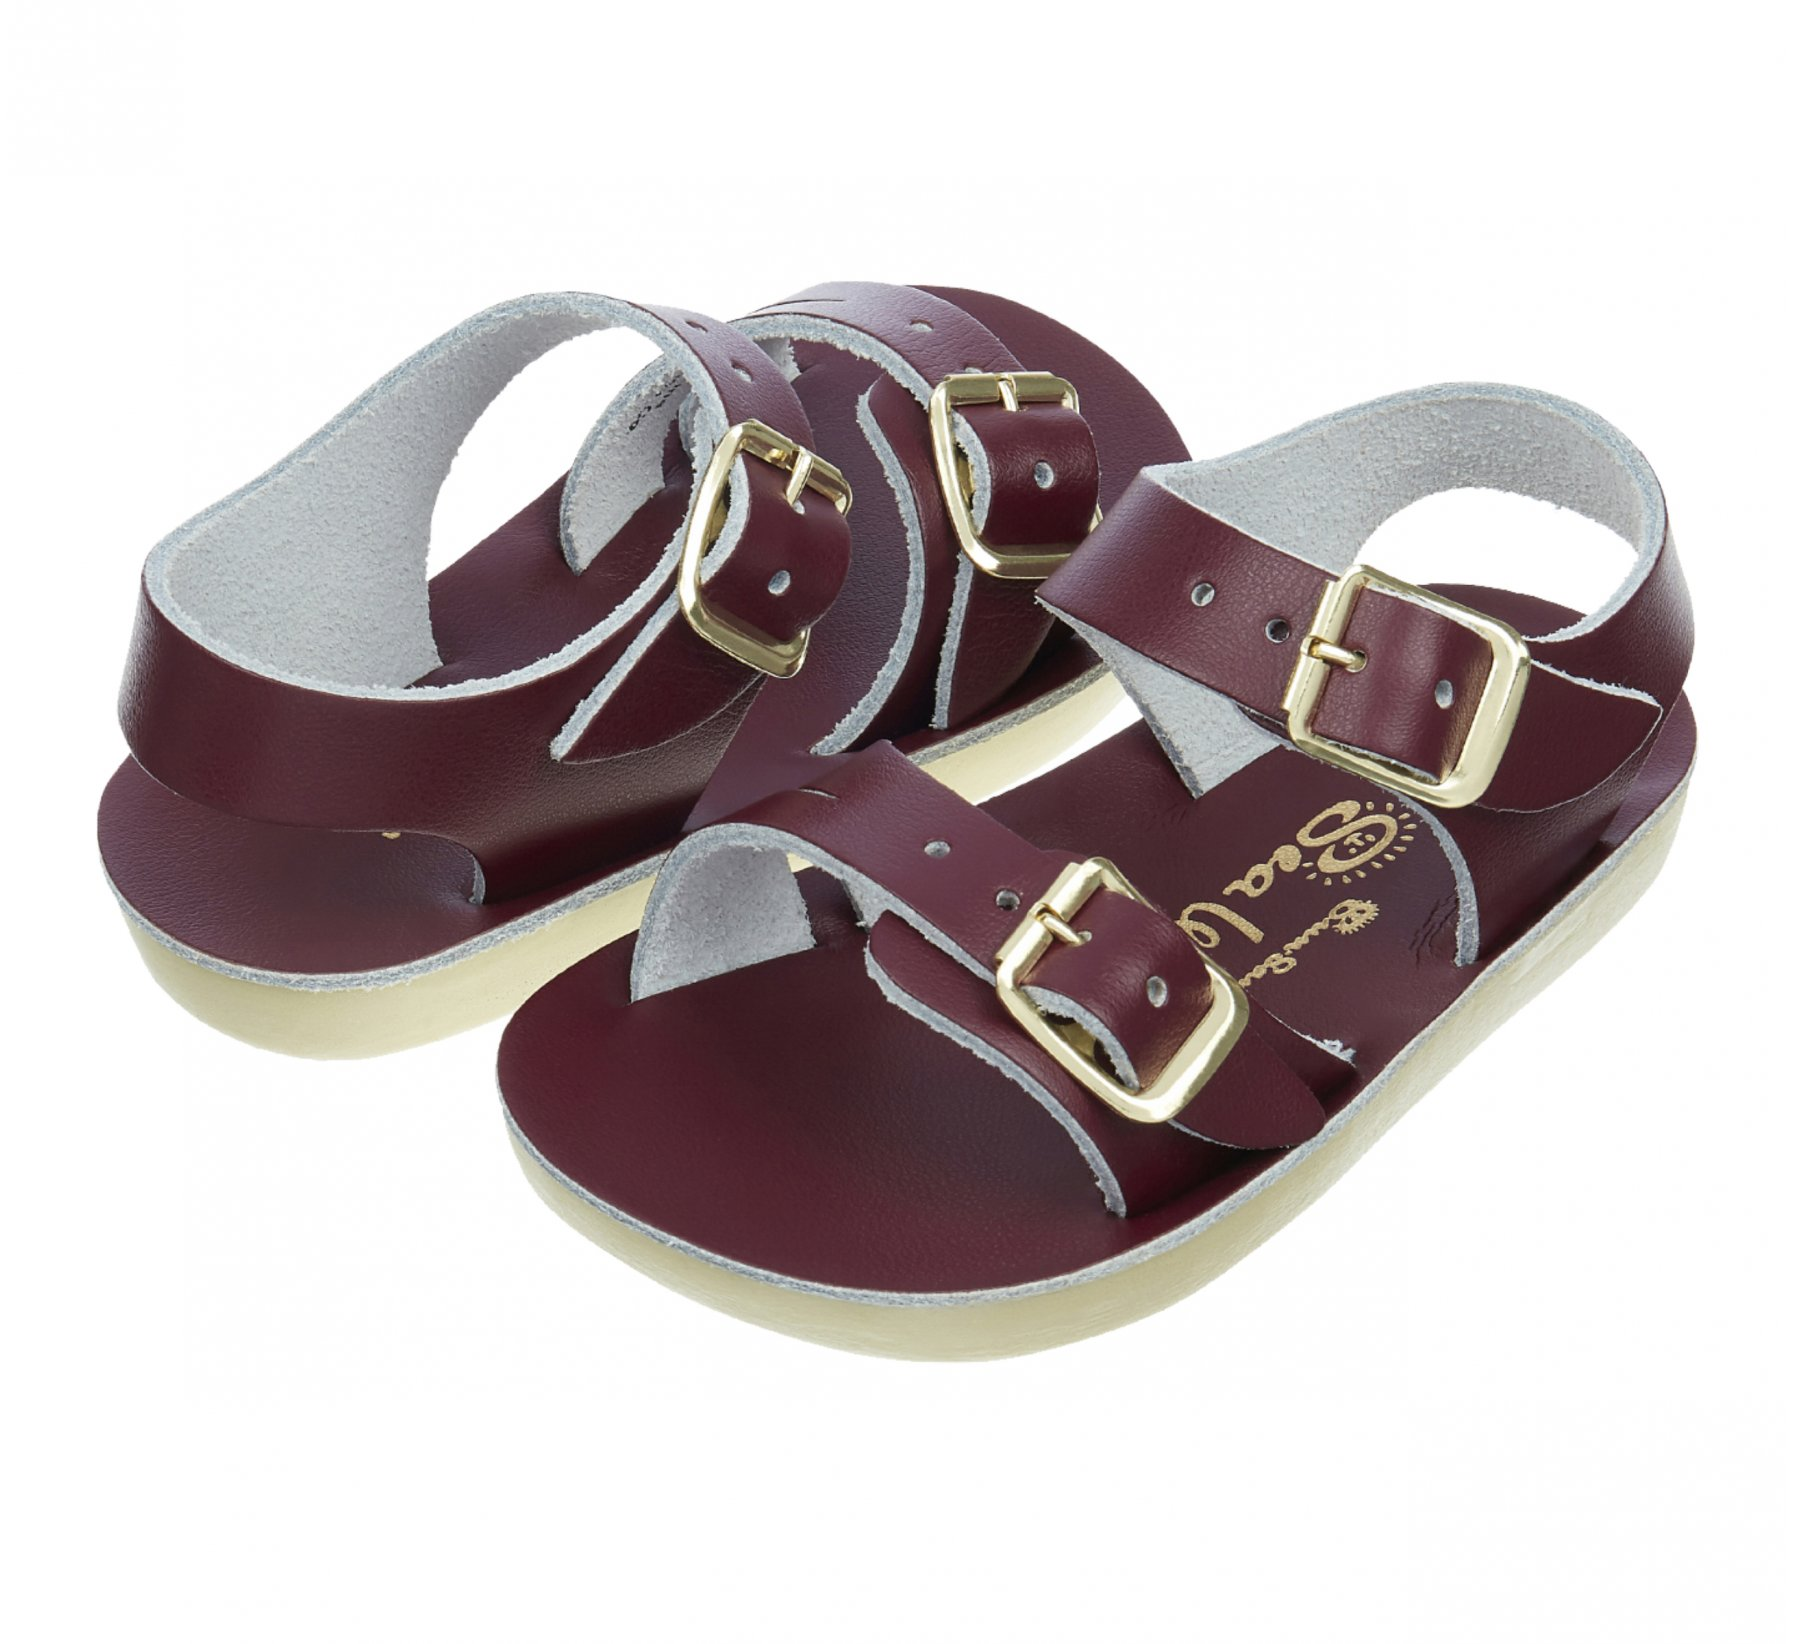 Seawee Bordeaux  - Salt Water Sandals